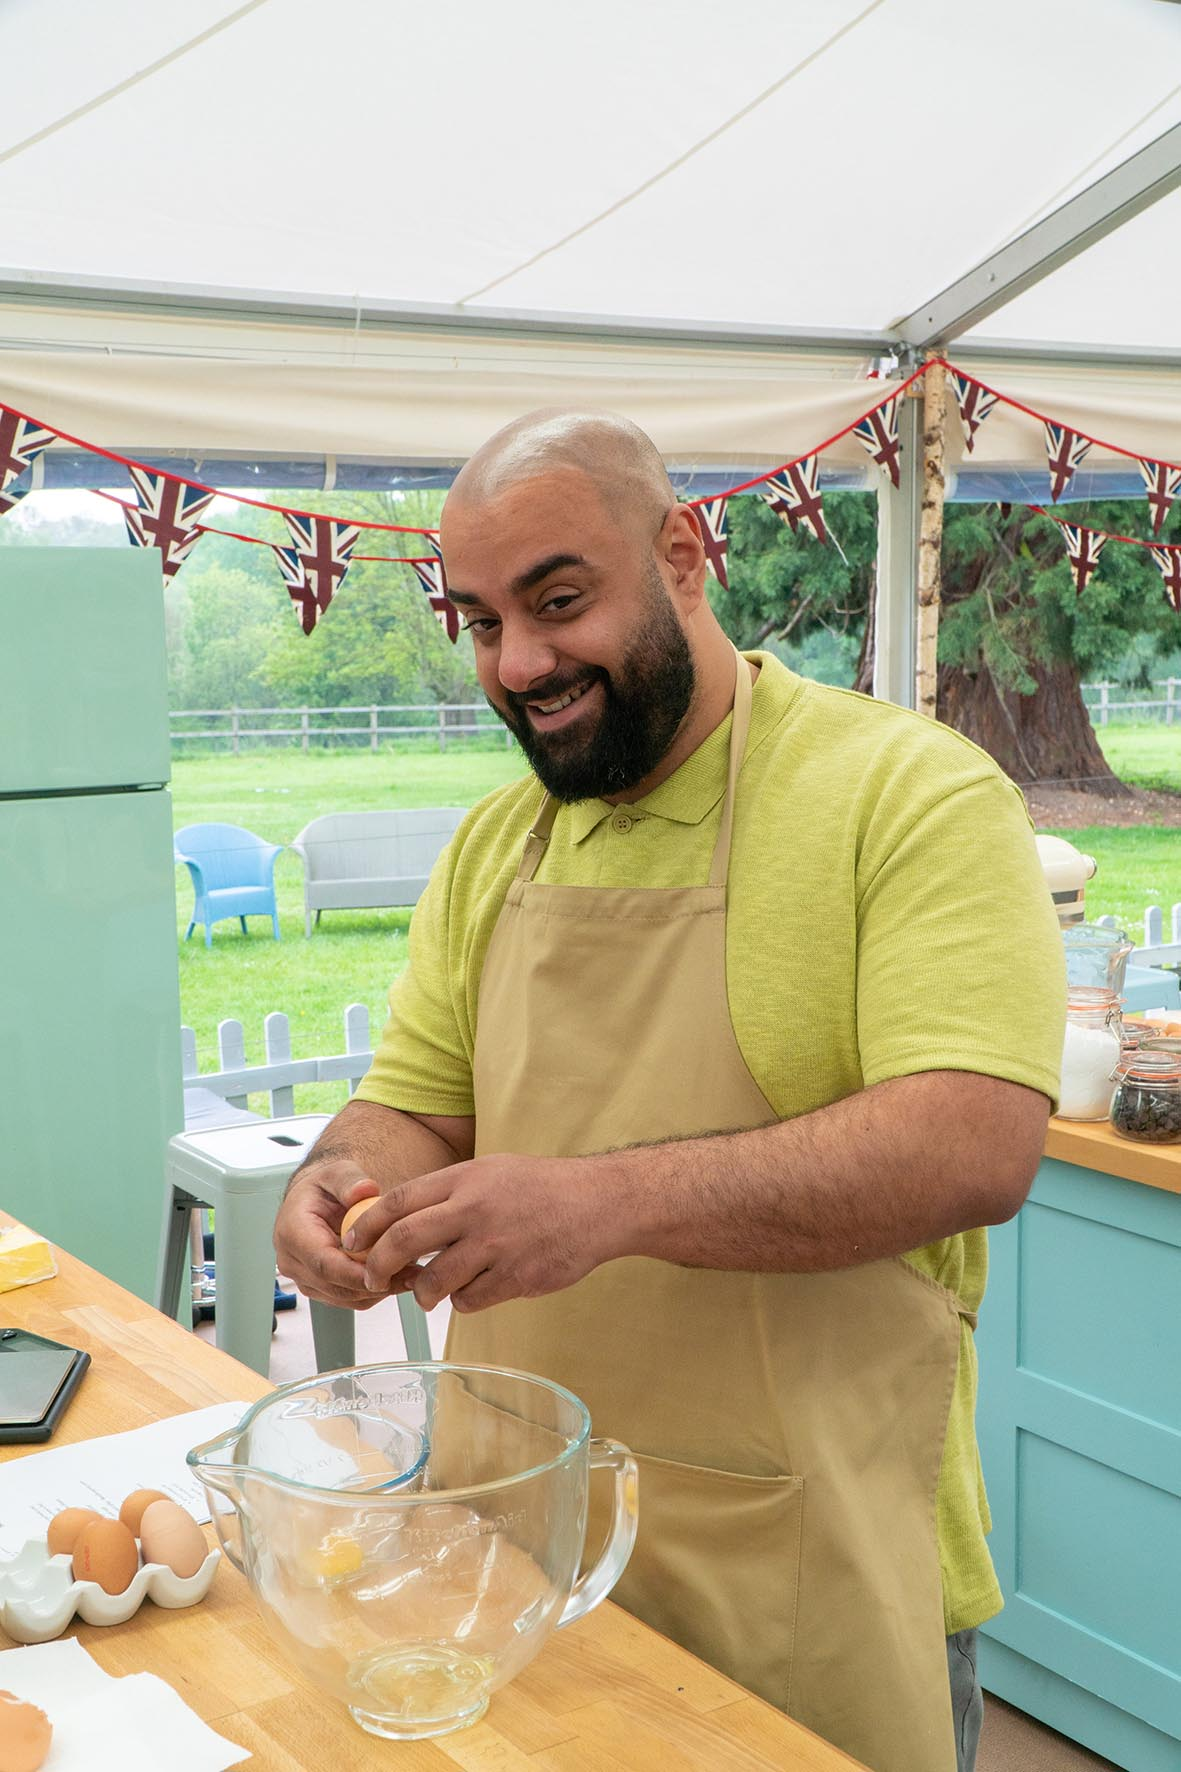 George - The Great British Bake Off